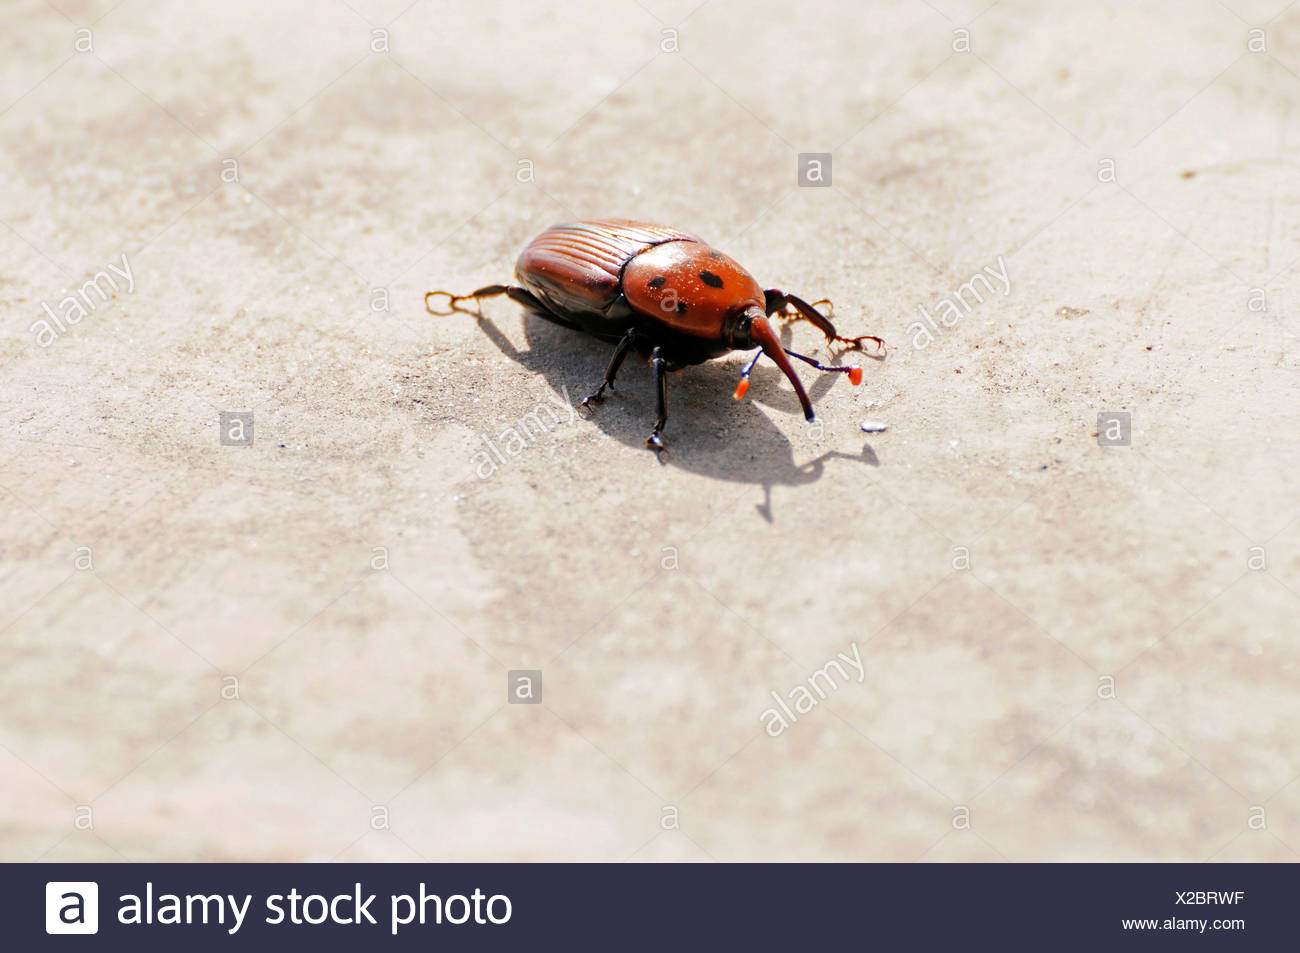 Red Palm Weevil Stock Photos & Red Palm Weevil Stock Images